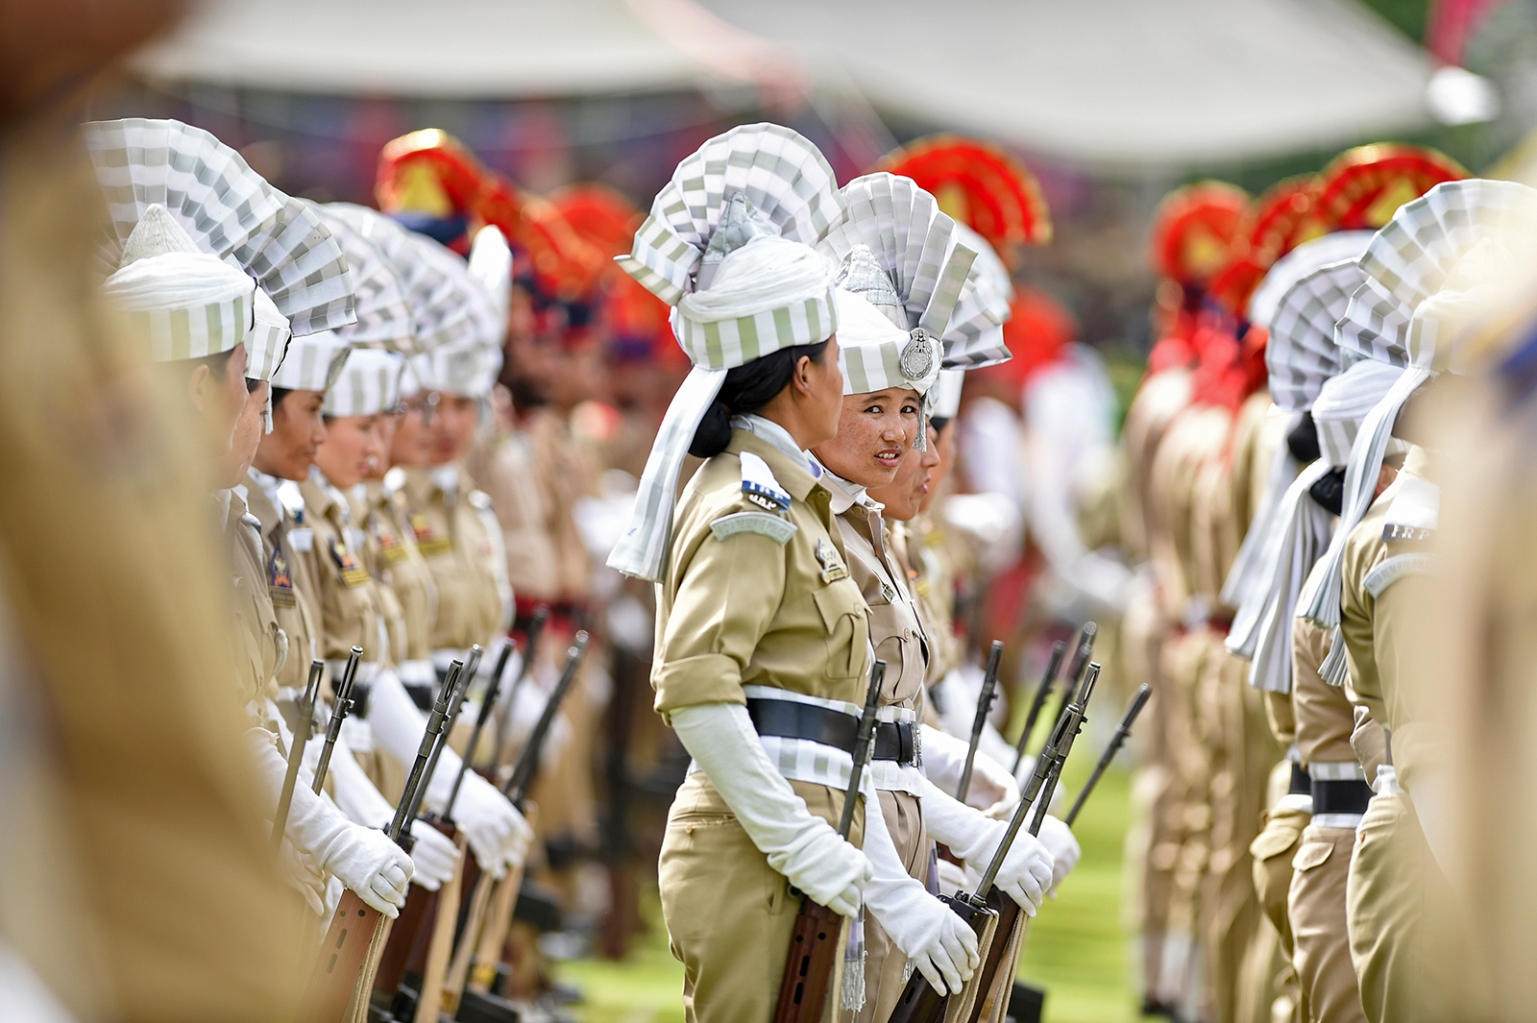 Jammu and Kashmir police personnel stand in formation during a ceremony to celebrate India's 73rd Independence Day, which marks the end of British colonial rule, in Srinagar on Aug. 15. TAUSEEF MUSTAFA/AFP/Getty Images